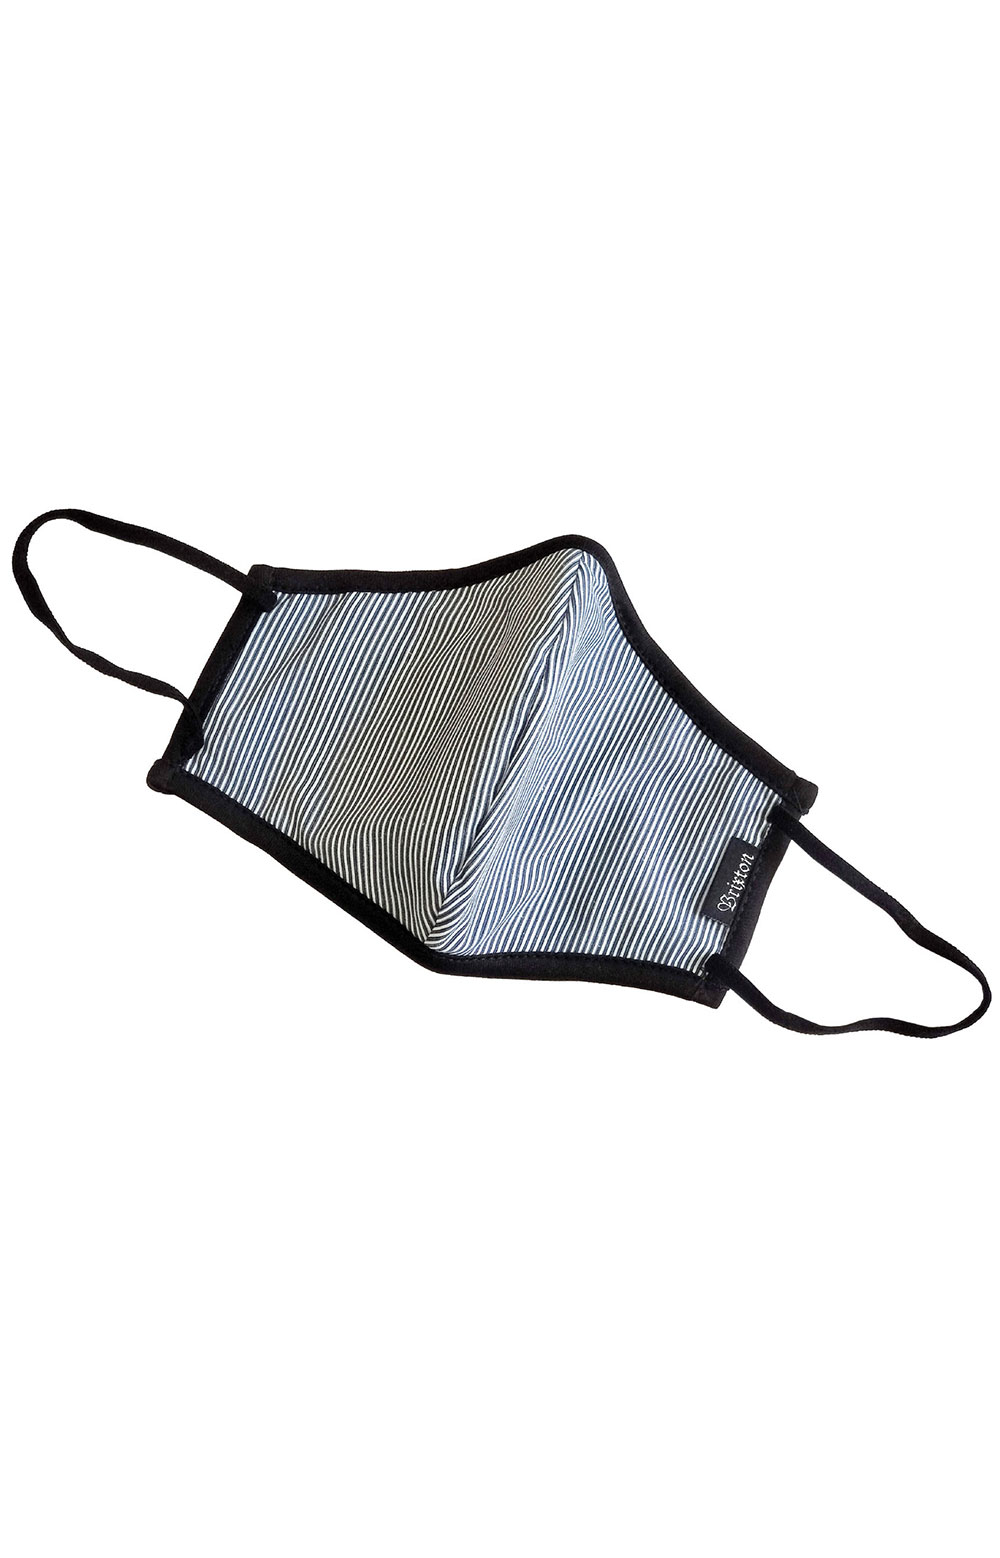 Antimicrobial 4-Way Stretch Face Mask - Engineer